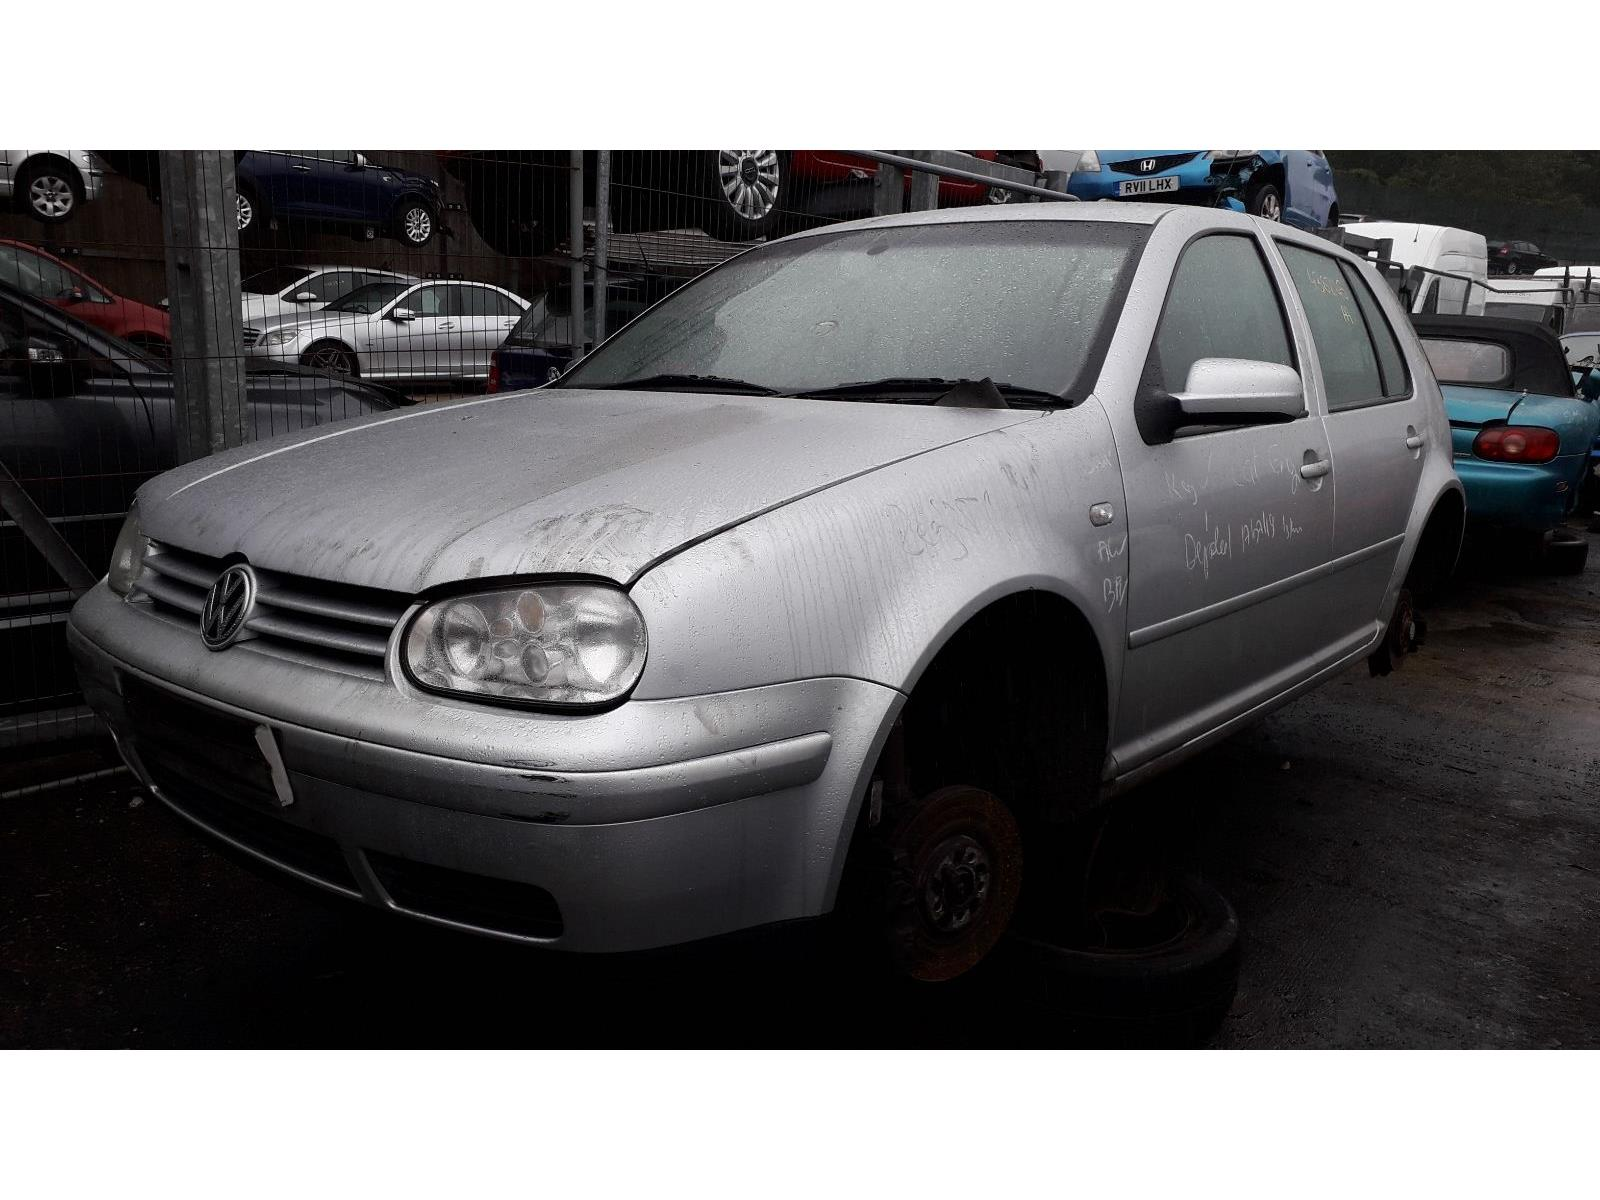 volkswagen golf mk4 1997 to 2003 v5 5 door hatchback